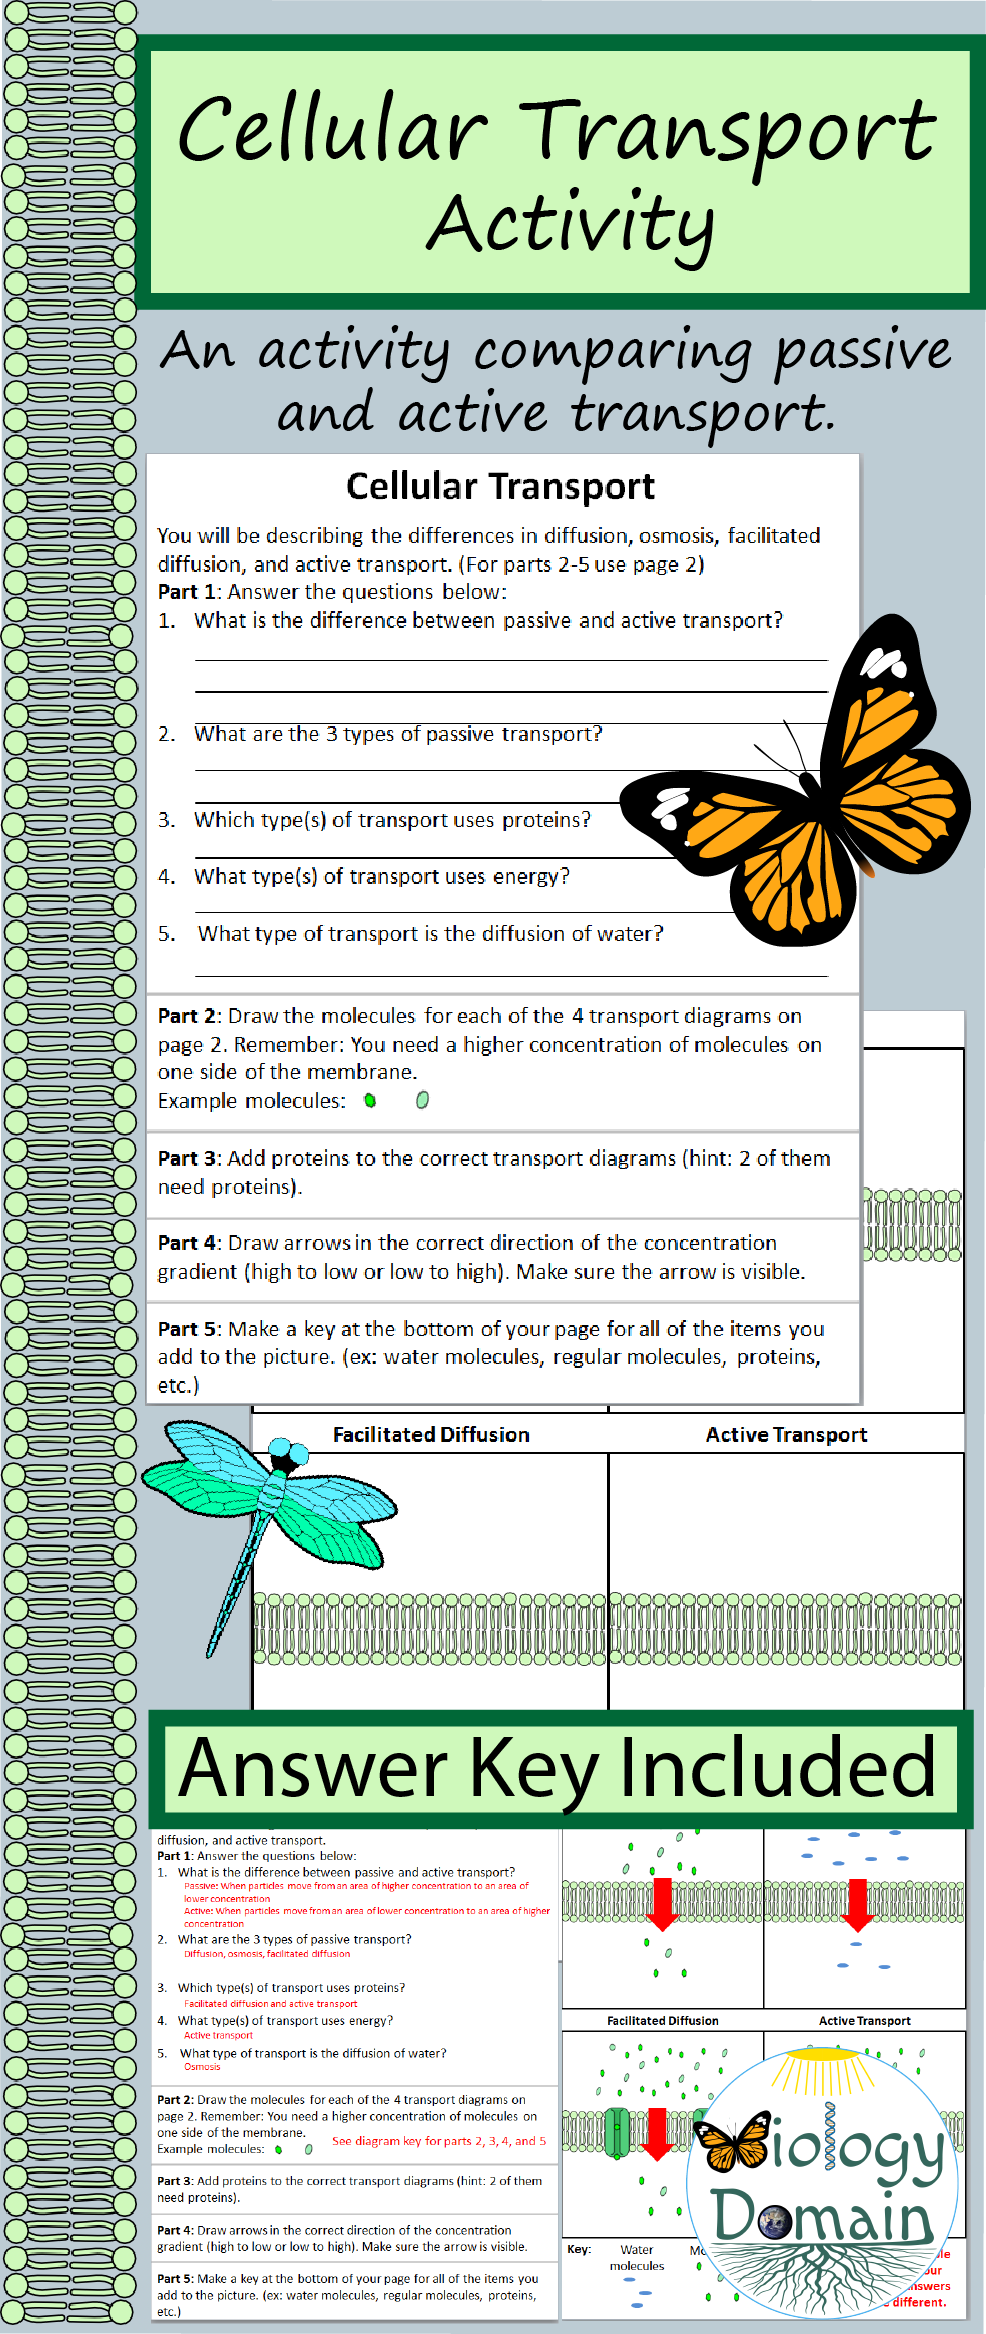 Transport Study Guide Key   Cellular Transport Review OSMOSIS In the likewise Cellular Transport Worksheet Image of awesome collection of cellular also  together with Cell Transport Worksheet Answer Key ABITLIKETHIS  Cellular Transport furthermore  in addition  further Kids  cell transport worksheet answers  G Cell Transport Worksheet furthermore Cellular Transport Worksheet Answer Key Cell Structure and Function moreover Cellular Transport Test  Review Questions  and Answer Keys by as well Cellular transport review answer key moreover Cellular Transport Worksheet Answers Transport Across Memnes in addition  further Cellular Transport Worksheet Name also  additionally clification of chemical reactions worksheet Discussion further Transport In Cells Worksheet Answers Fresh Cell Memne Coloring. on cellular transport worksheet answer key